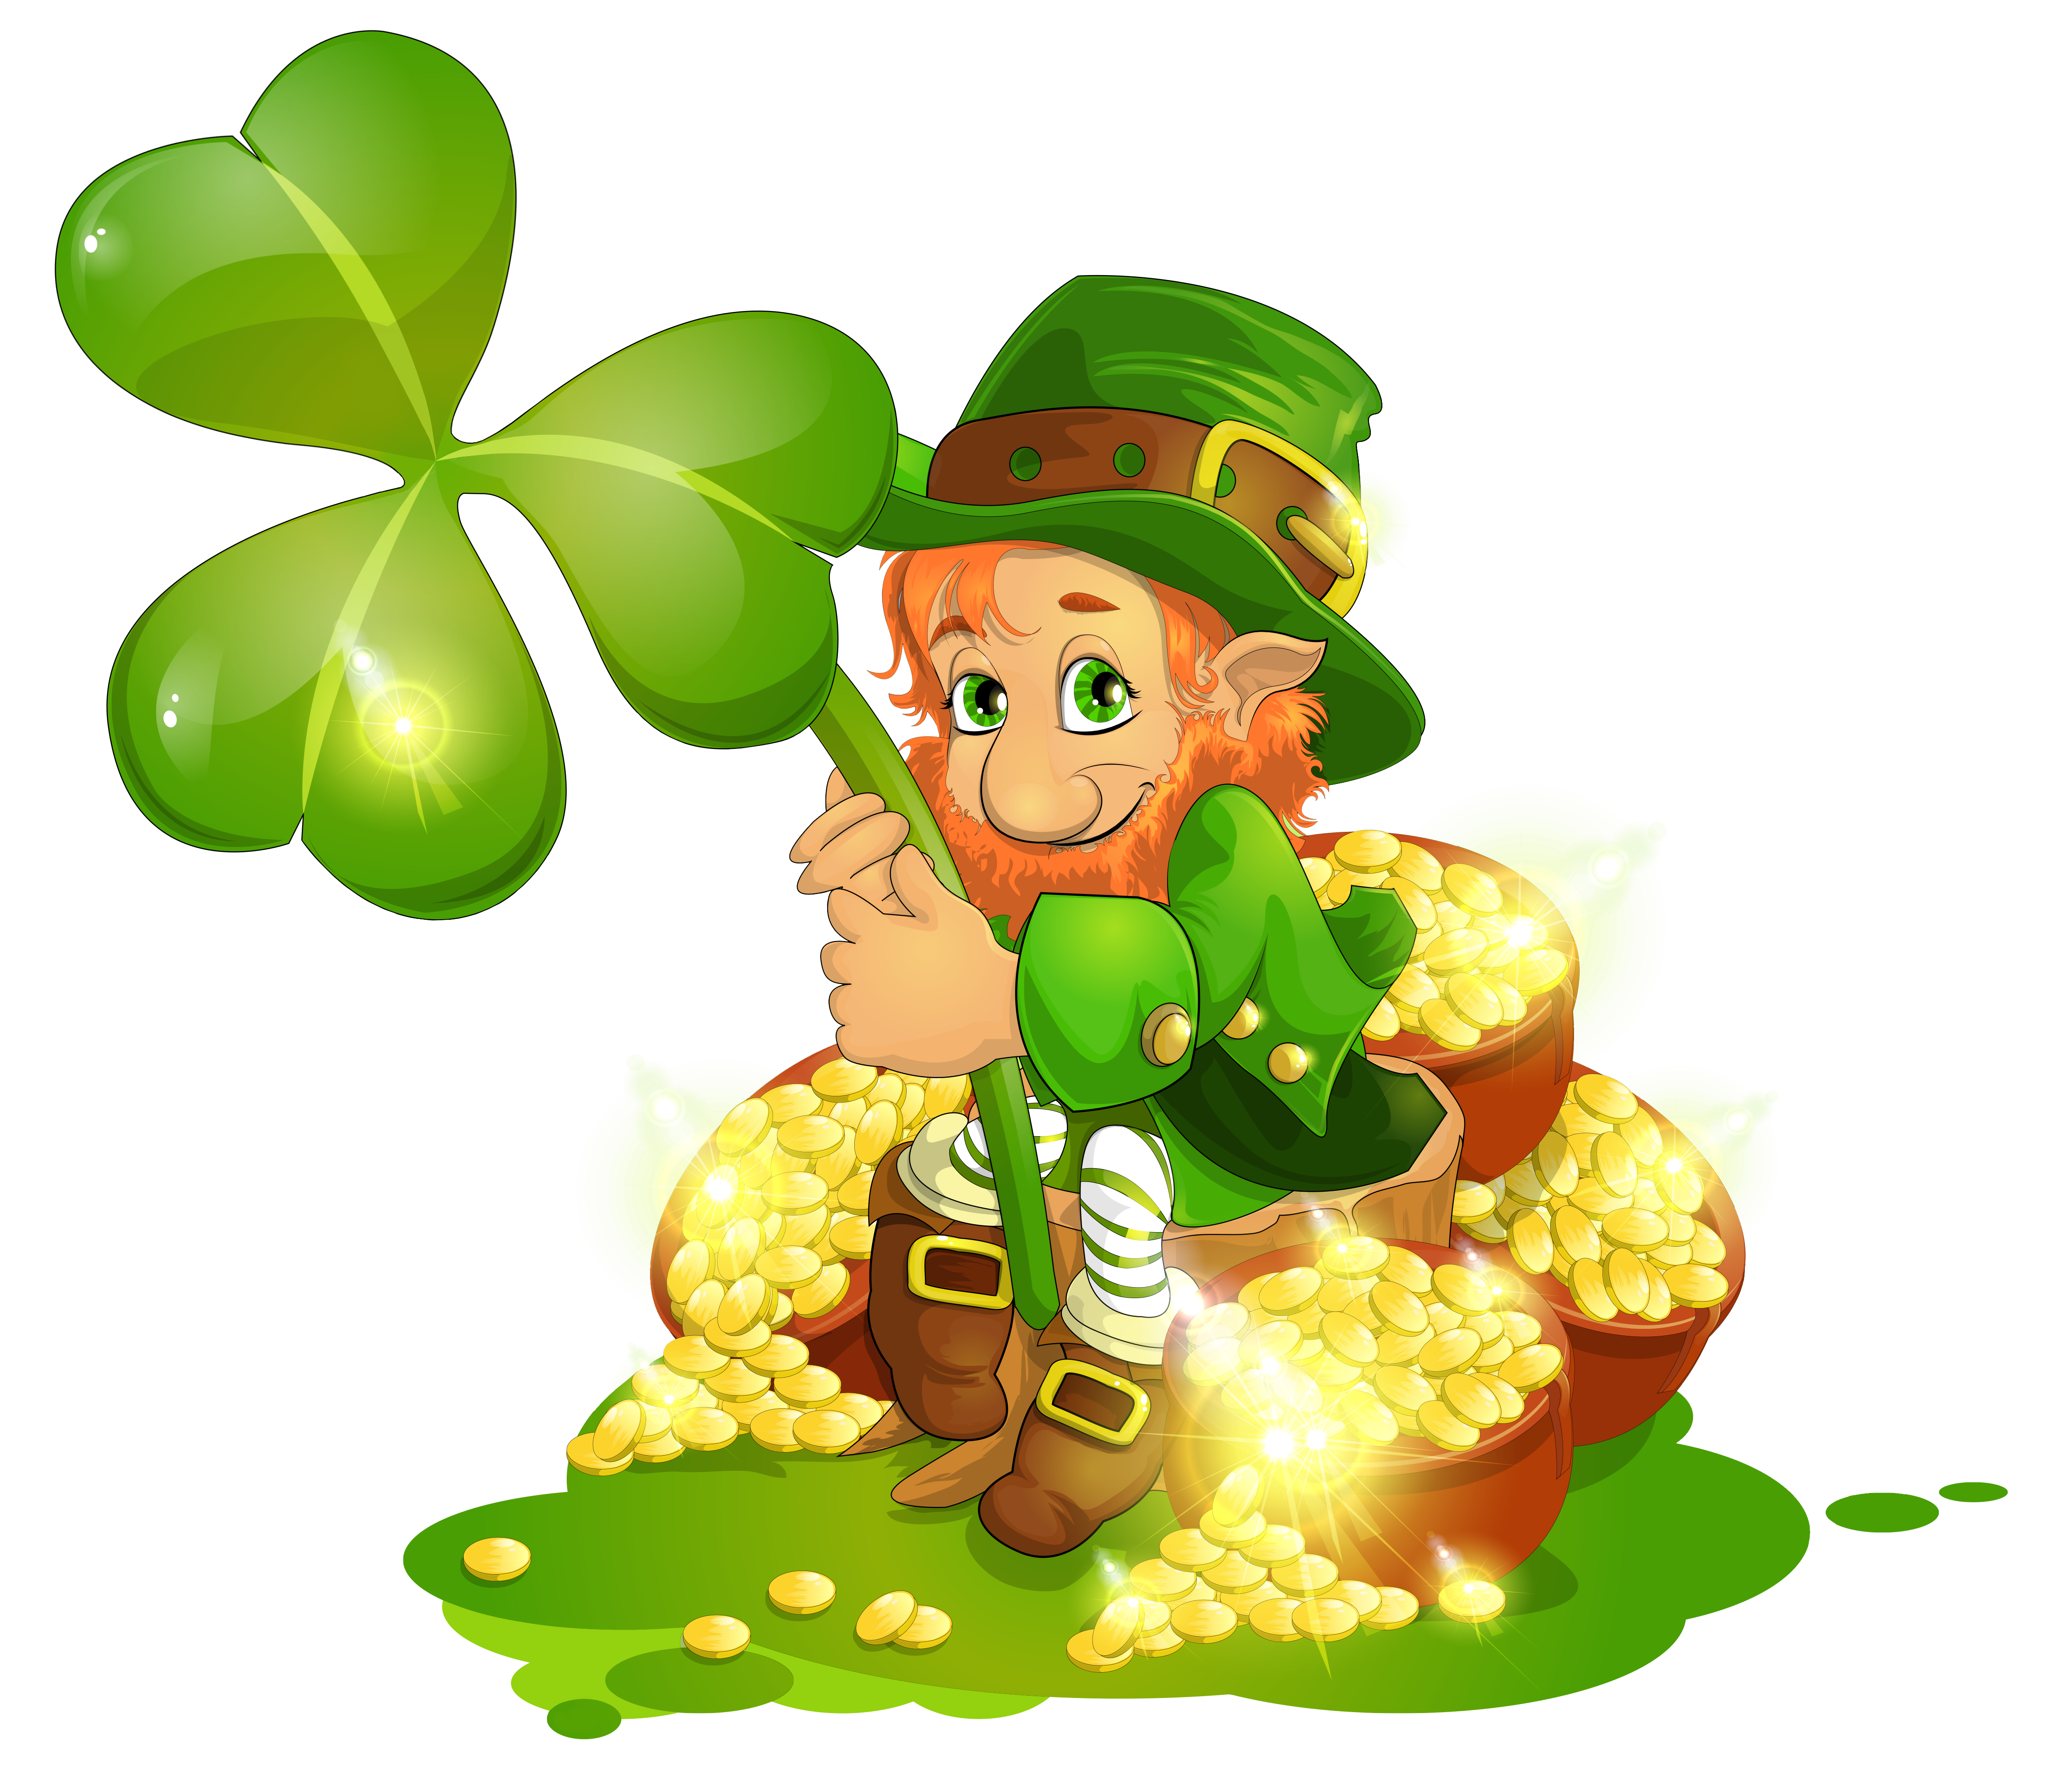 Saint Patrick\'s Day Leprechaun with Pot of Gold and Shamrock.